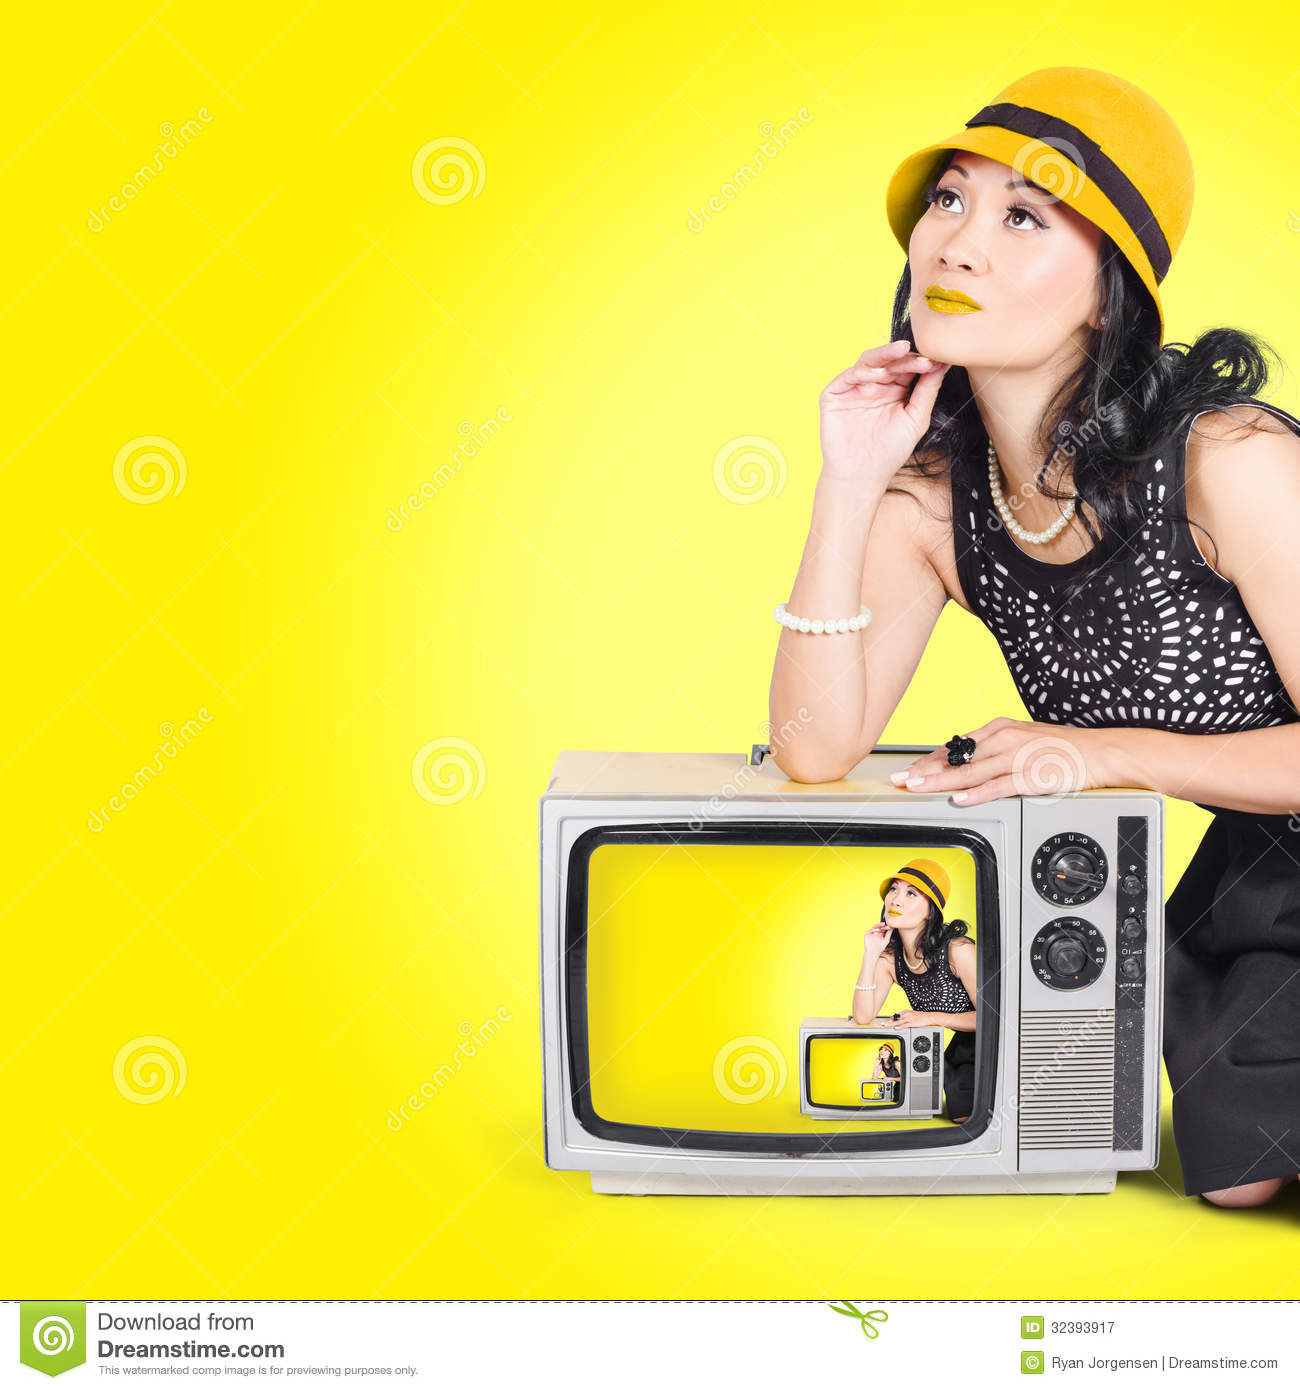 Beautiful Vogue Woman In Vintage 50s Fashion Style Royalty Free Stock Photogr -> Pose Tv Dising